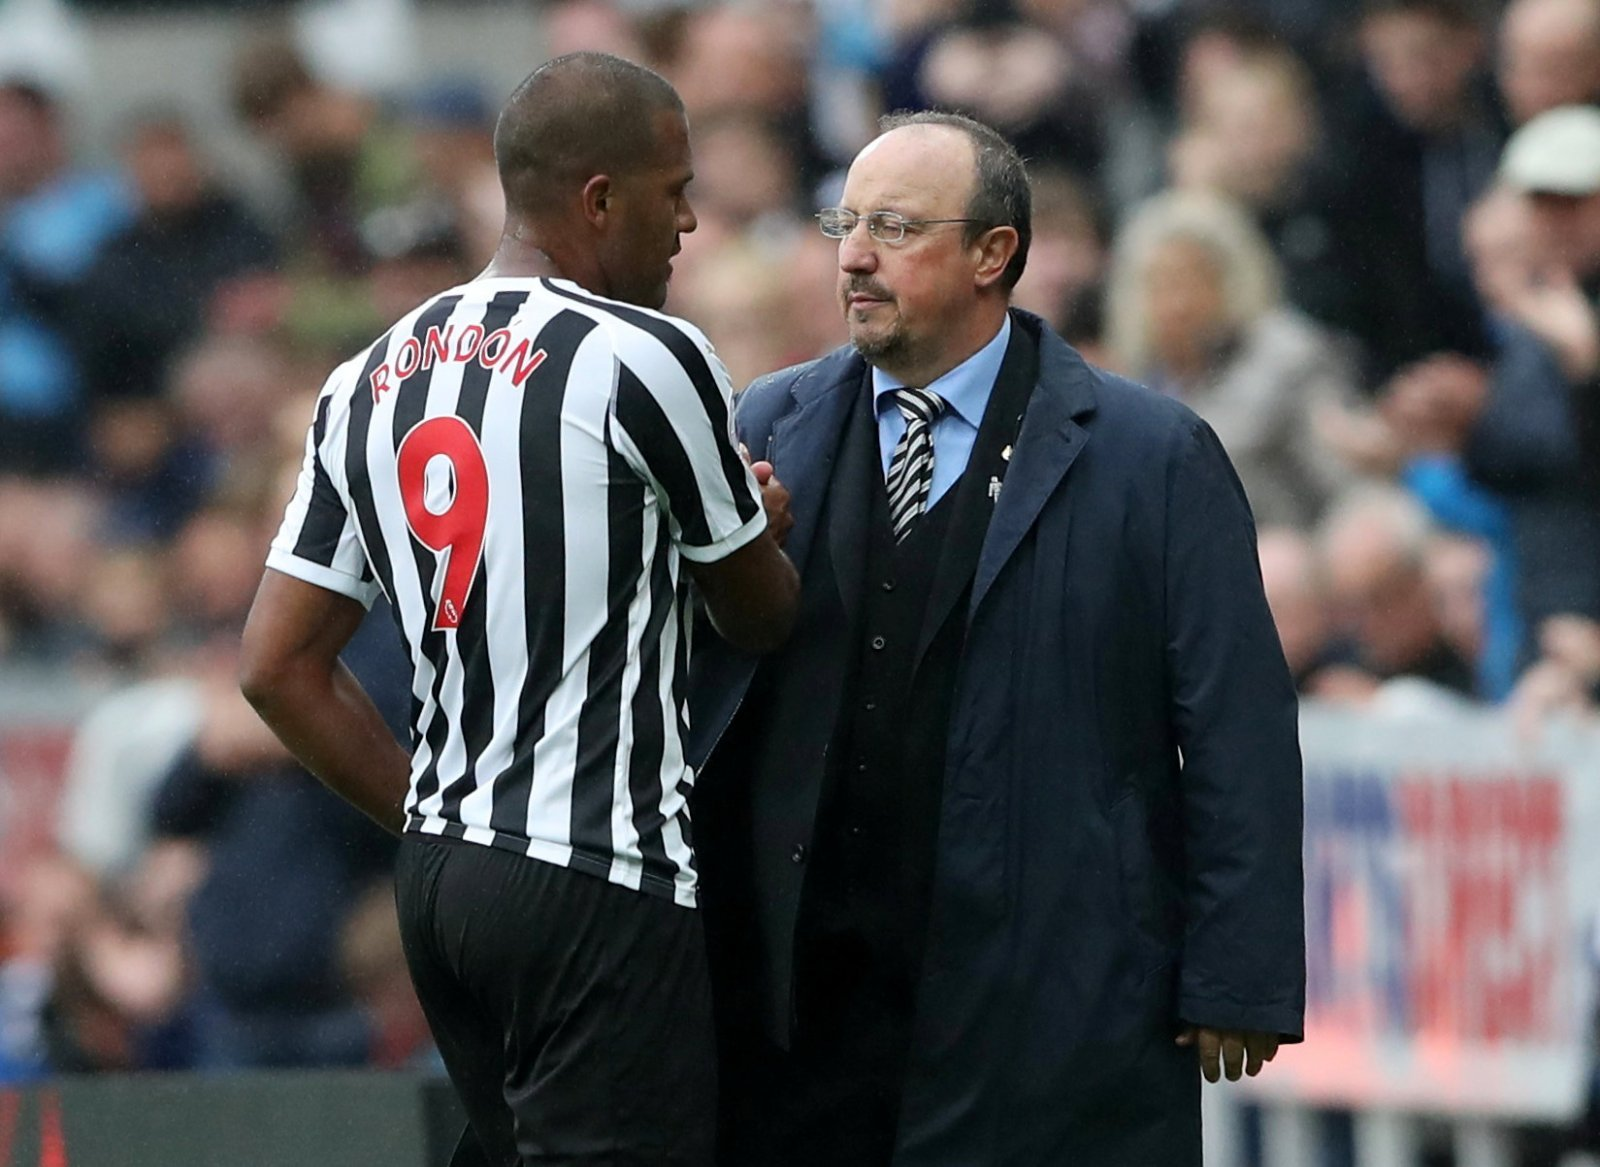 Rafa Benitez's substitutions have frustrated these Newcastle fans